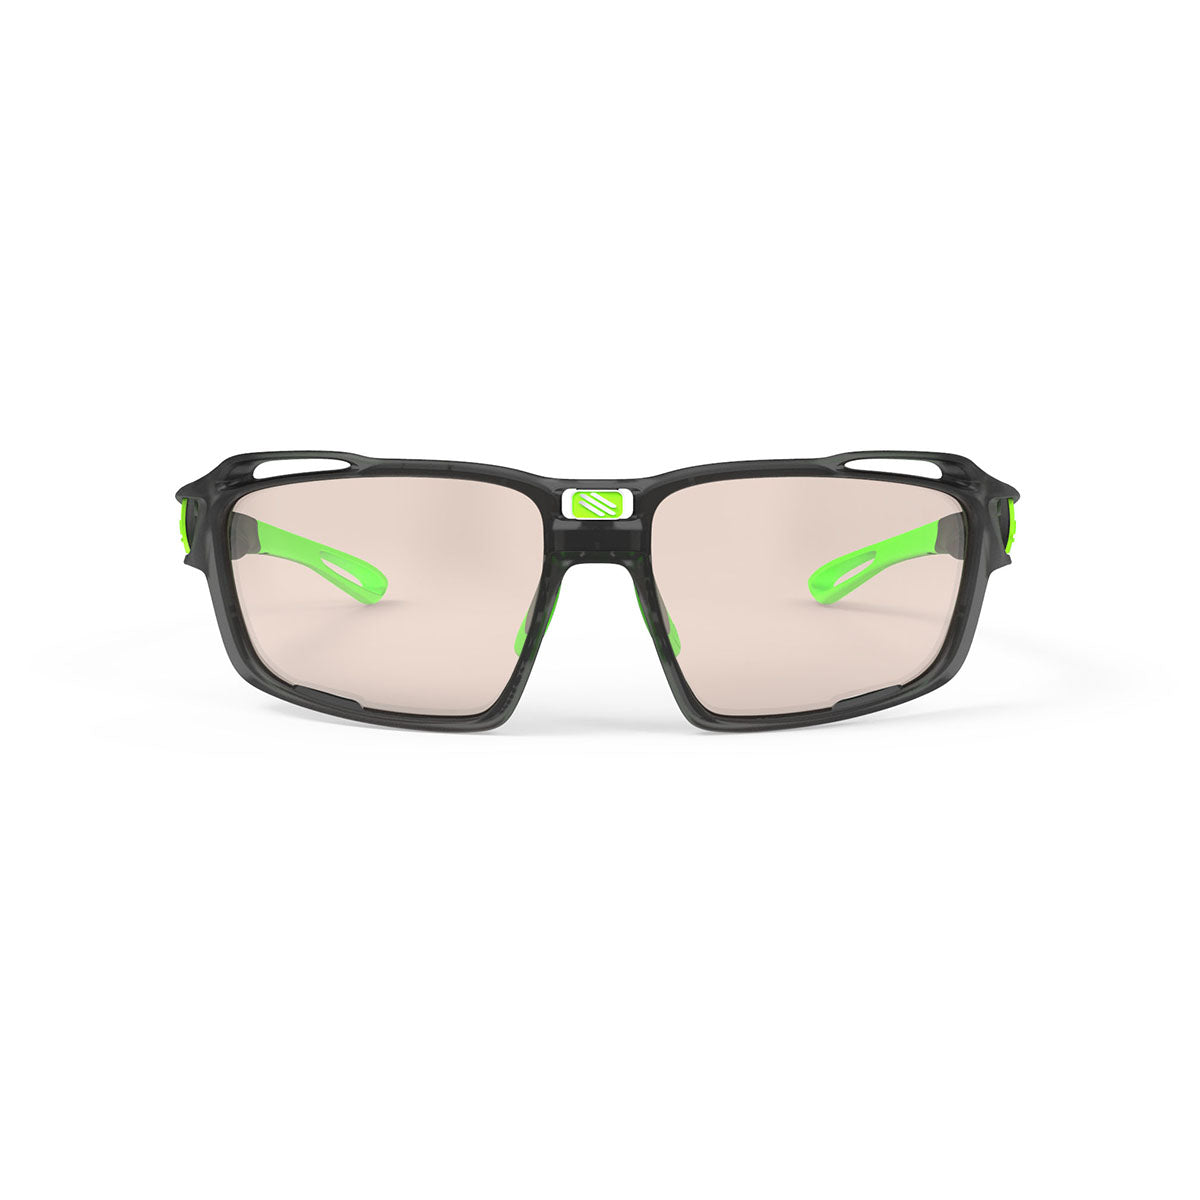 Rudy Project - Sintryx - frame color: Ice Graphite Matte - lens color: ImpactX-2 Photochromic Clear to Laser Brown - Bumper Color:  - photo angle: Front View Variant Hover Image